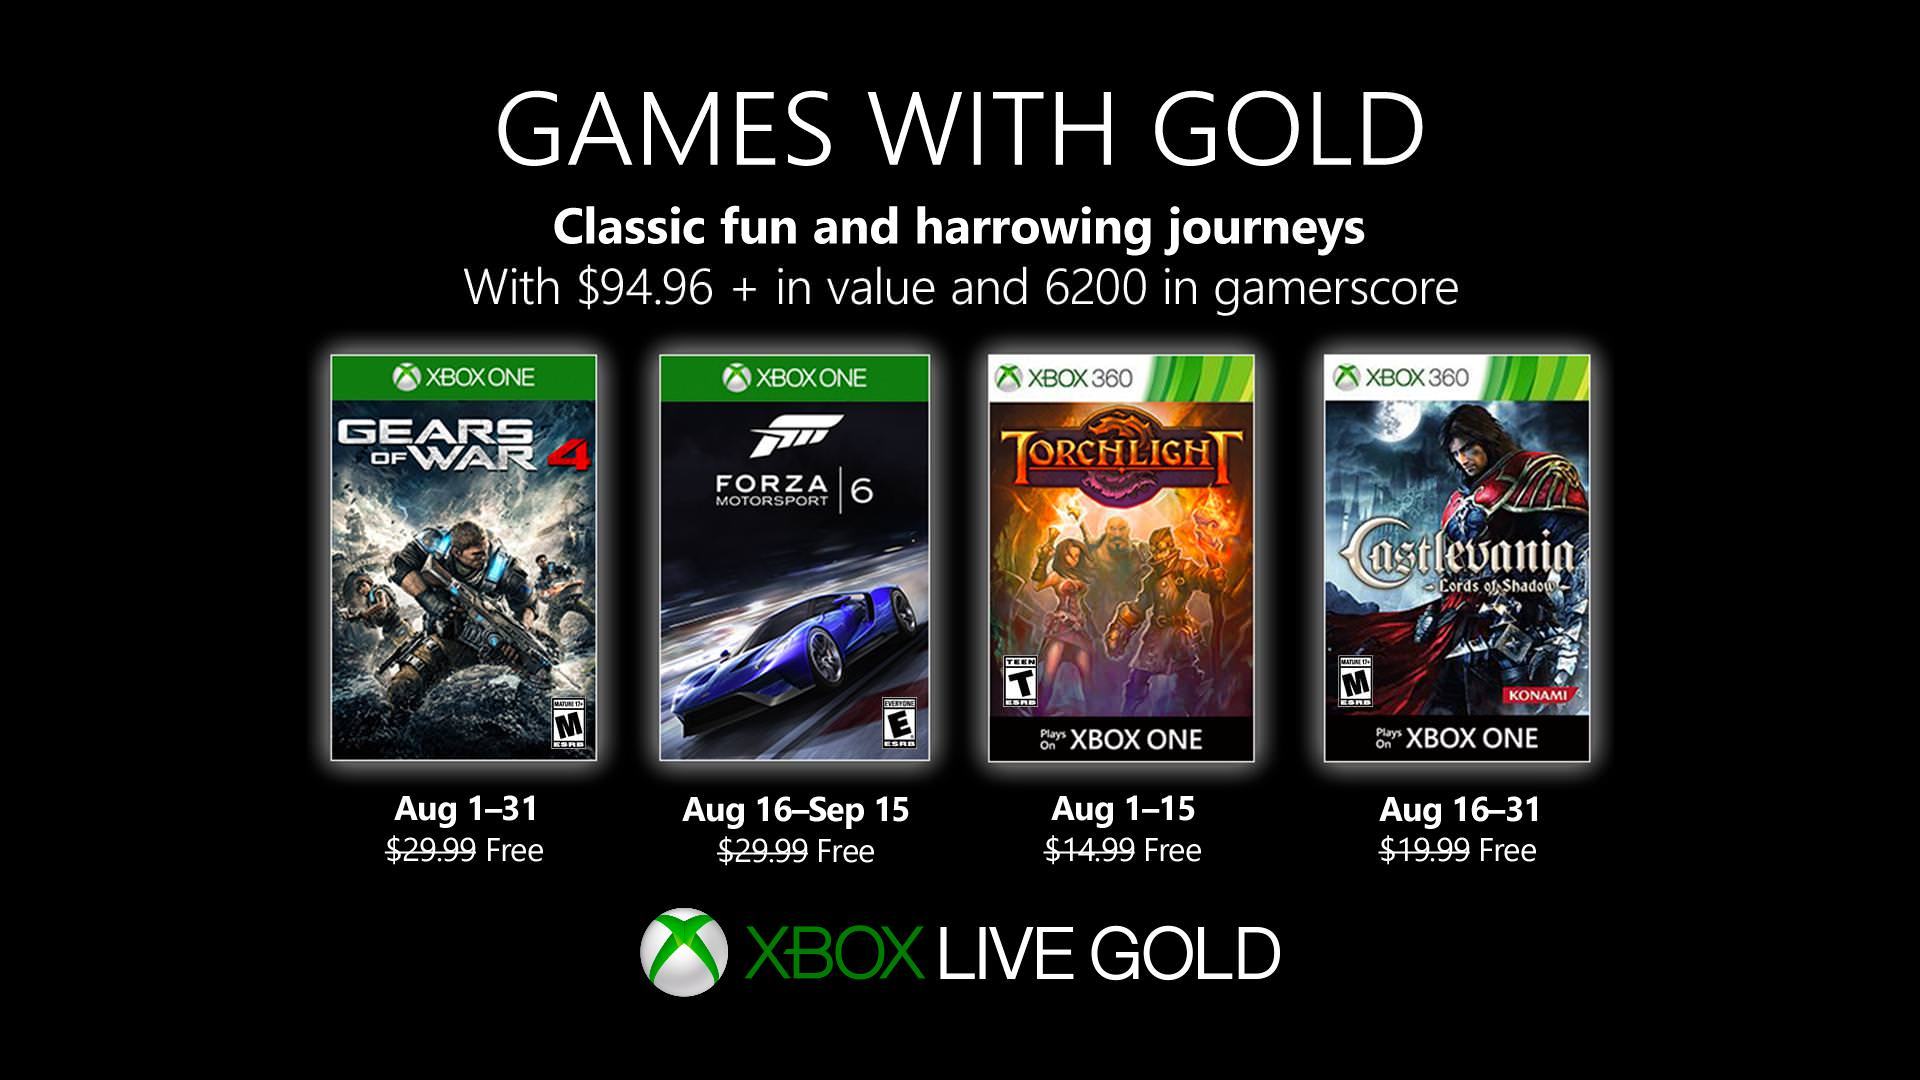 Xbox Games With Gold: August 2019 – Gears of War 4, Forza 6 and more